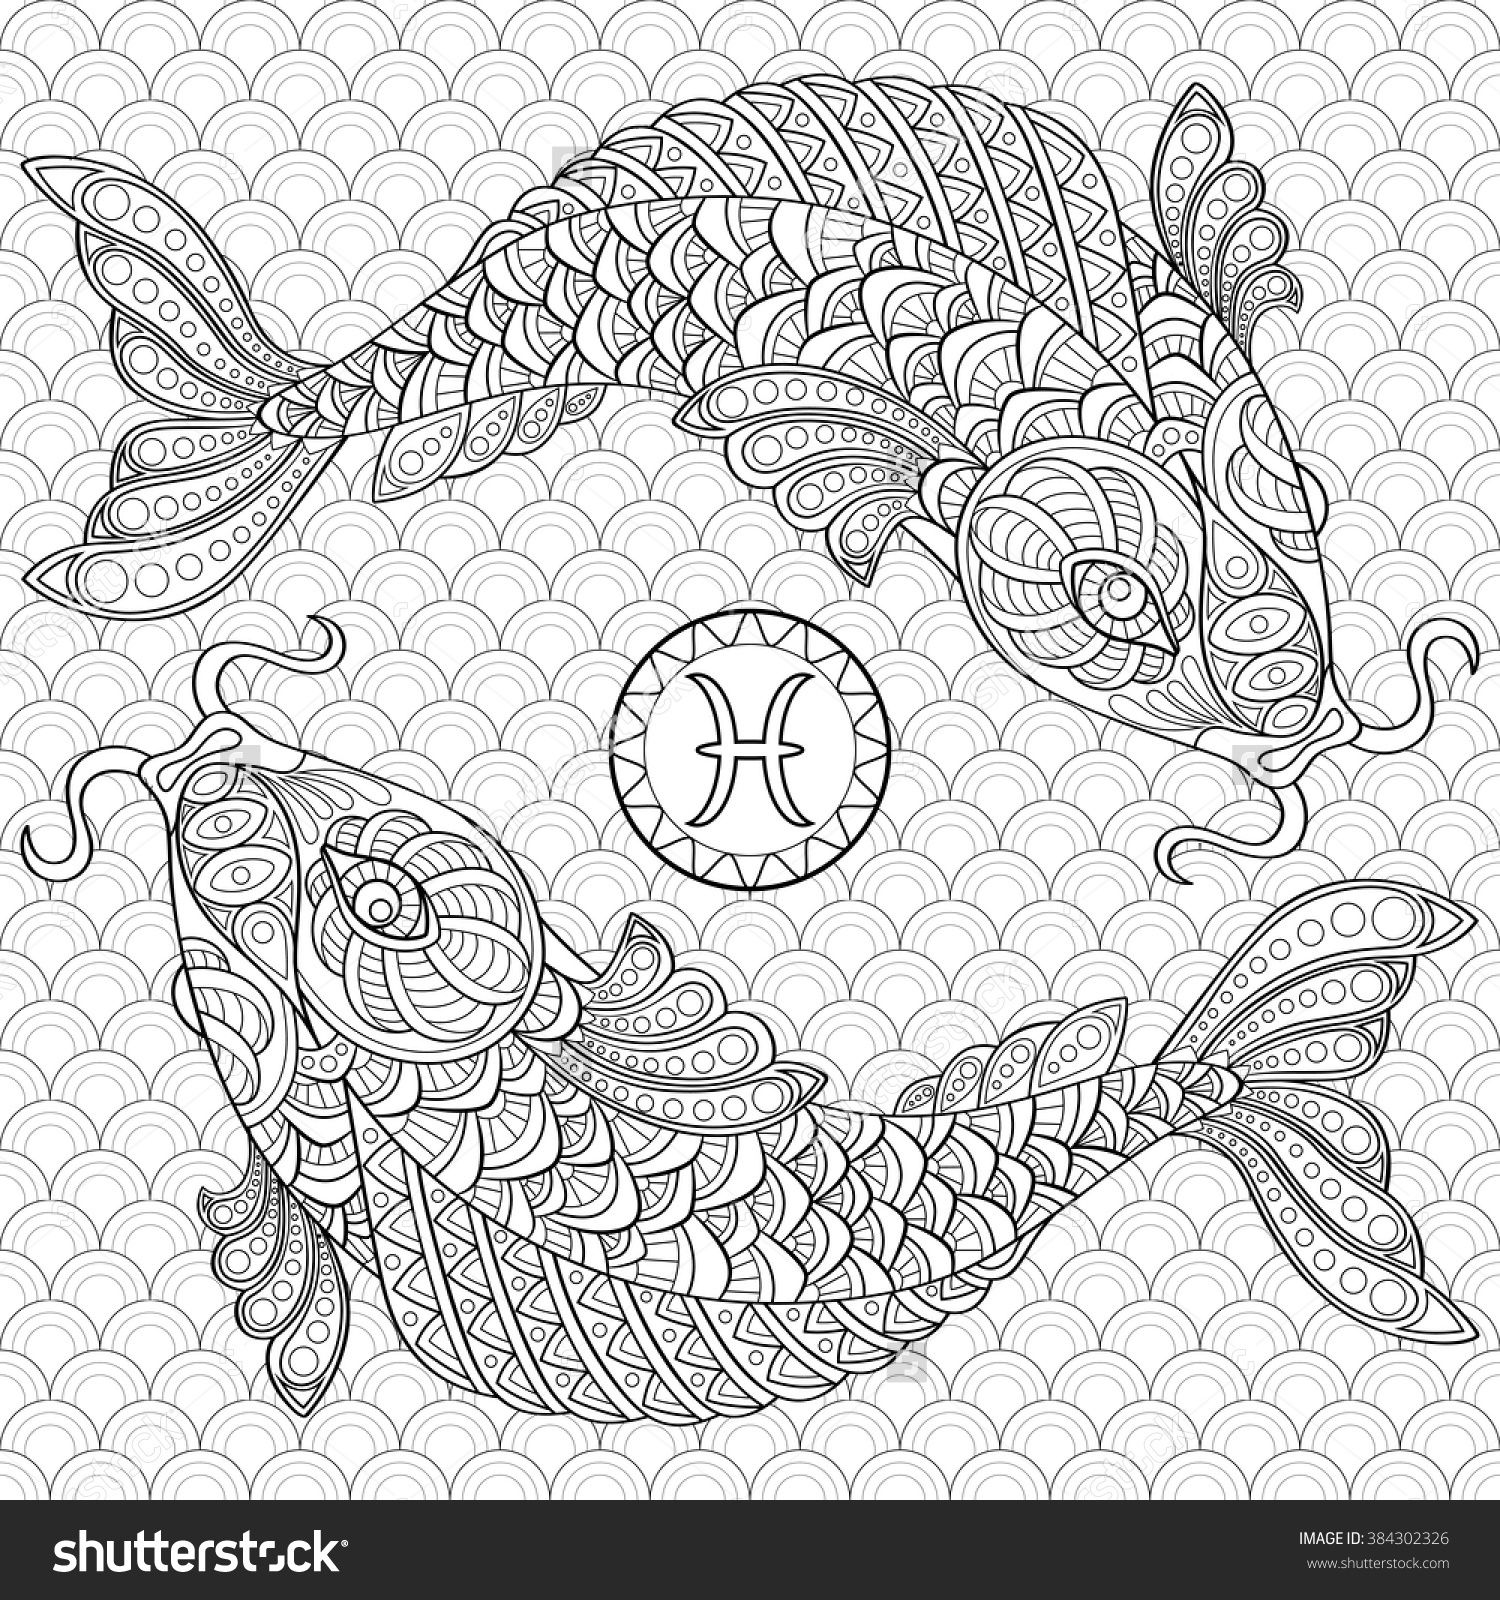 Koi Fish Chinese Carps Adult Antistress Coloring Page Black And White Hand Drawn Doodle For Book Stock Vector Illustration 384302326